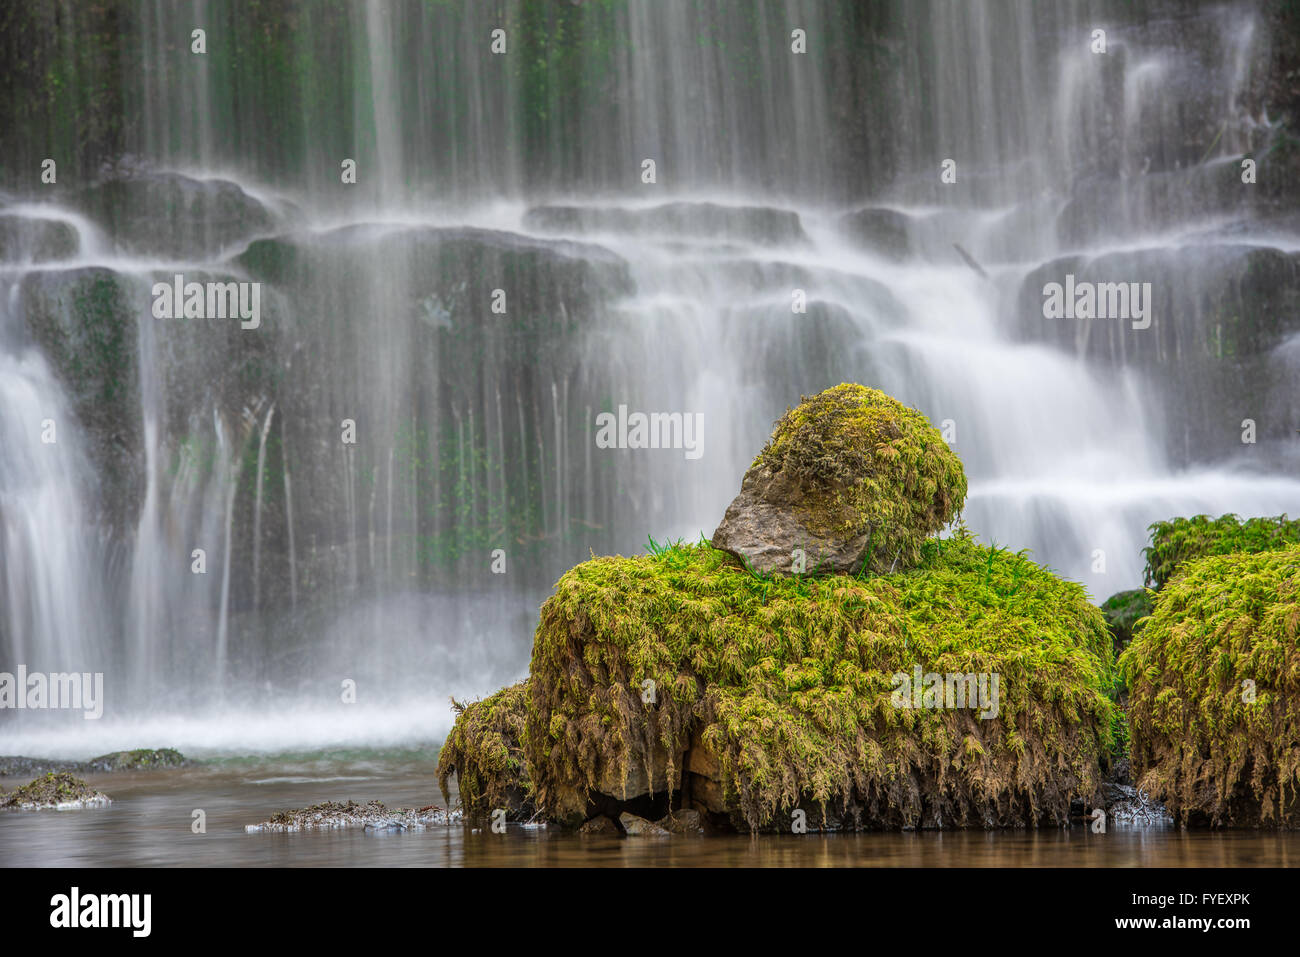 The Scenic Waterfall at Scalebar Force near Settle in Yorkshire - Stock Image